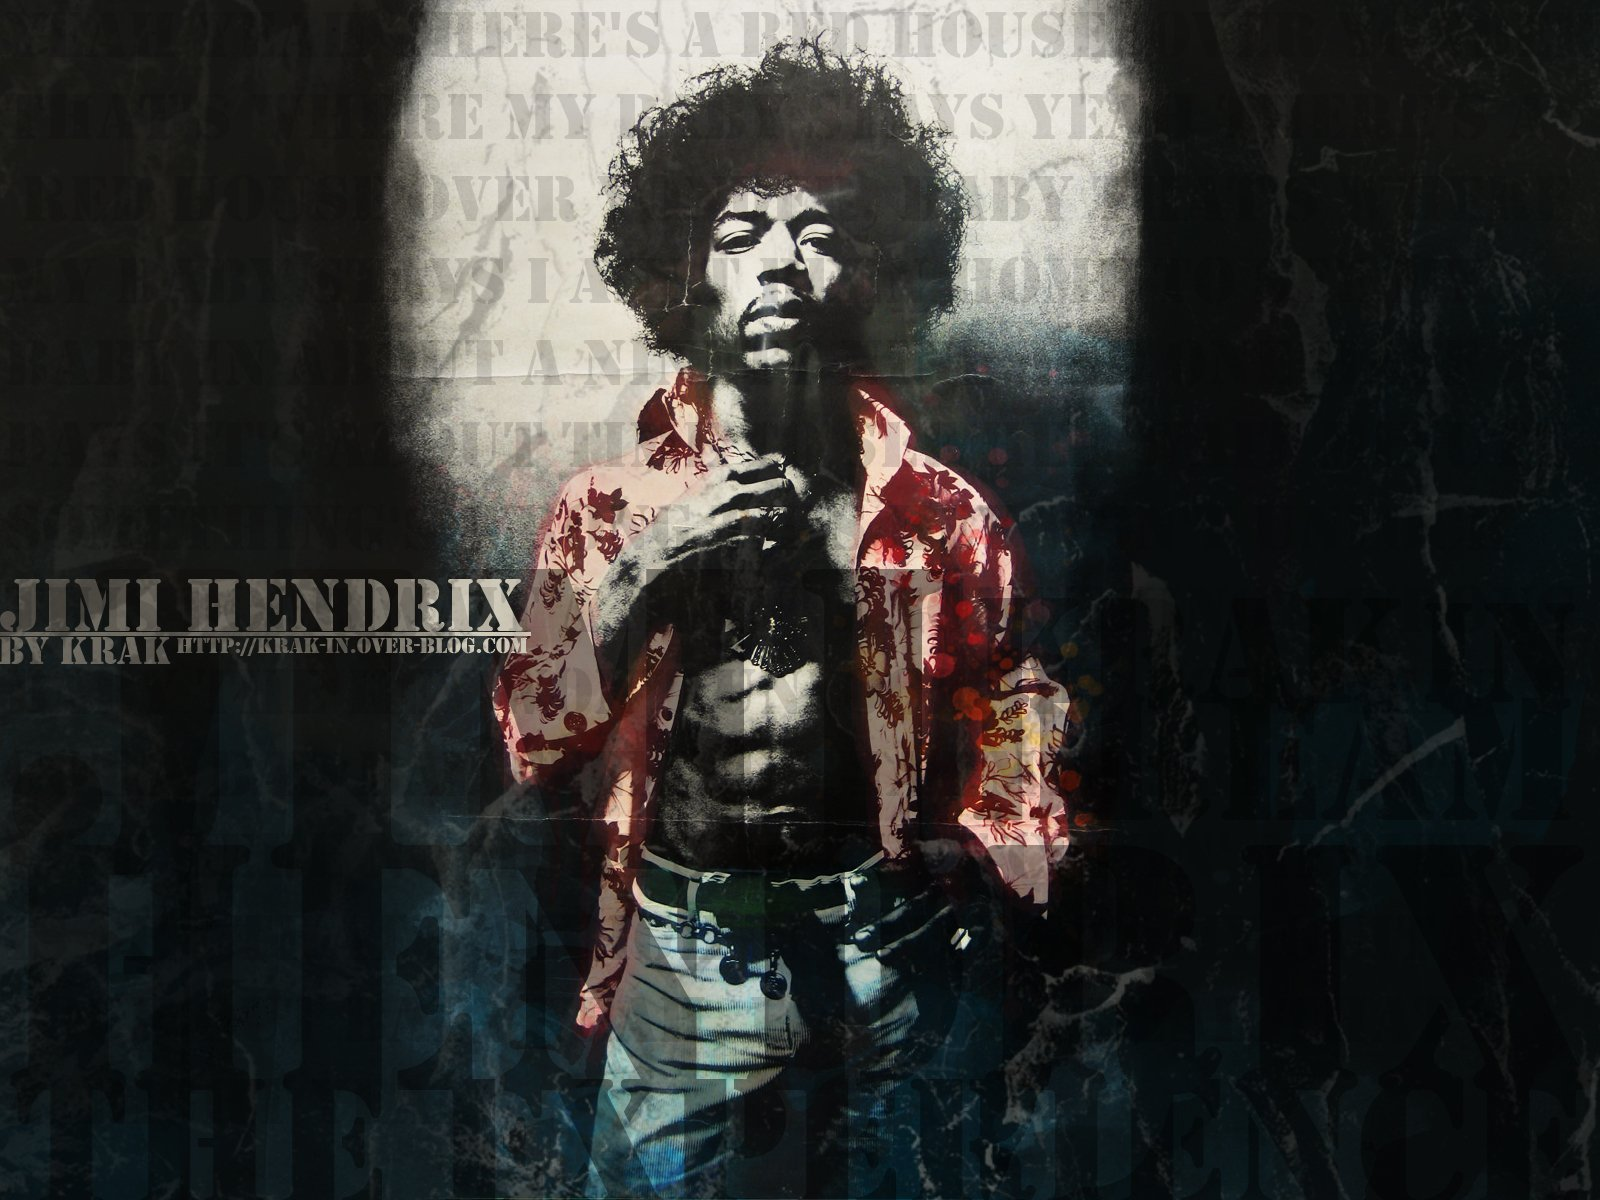 76 jimi hendrix hd wallpapers background images wallpaper abyss hd wallpaper background image id428873 1600x1200 music jimi hendrix thecheapjerseys Gallery